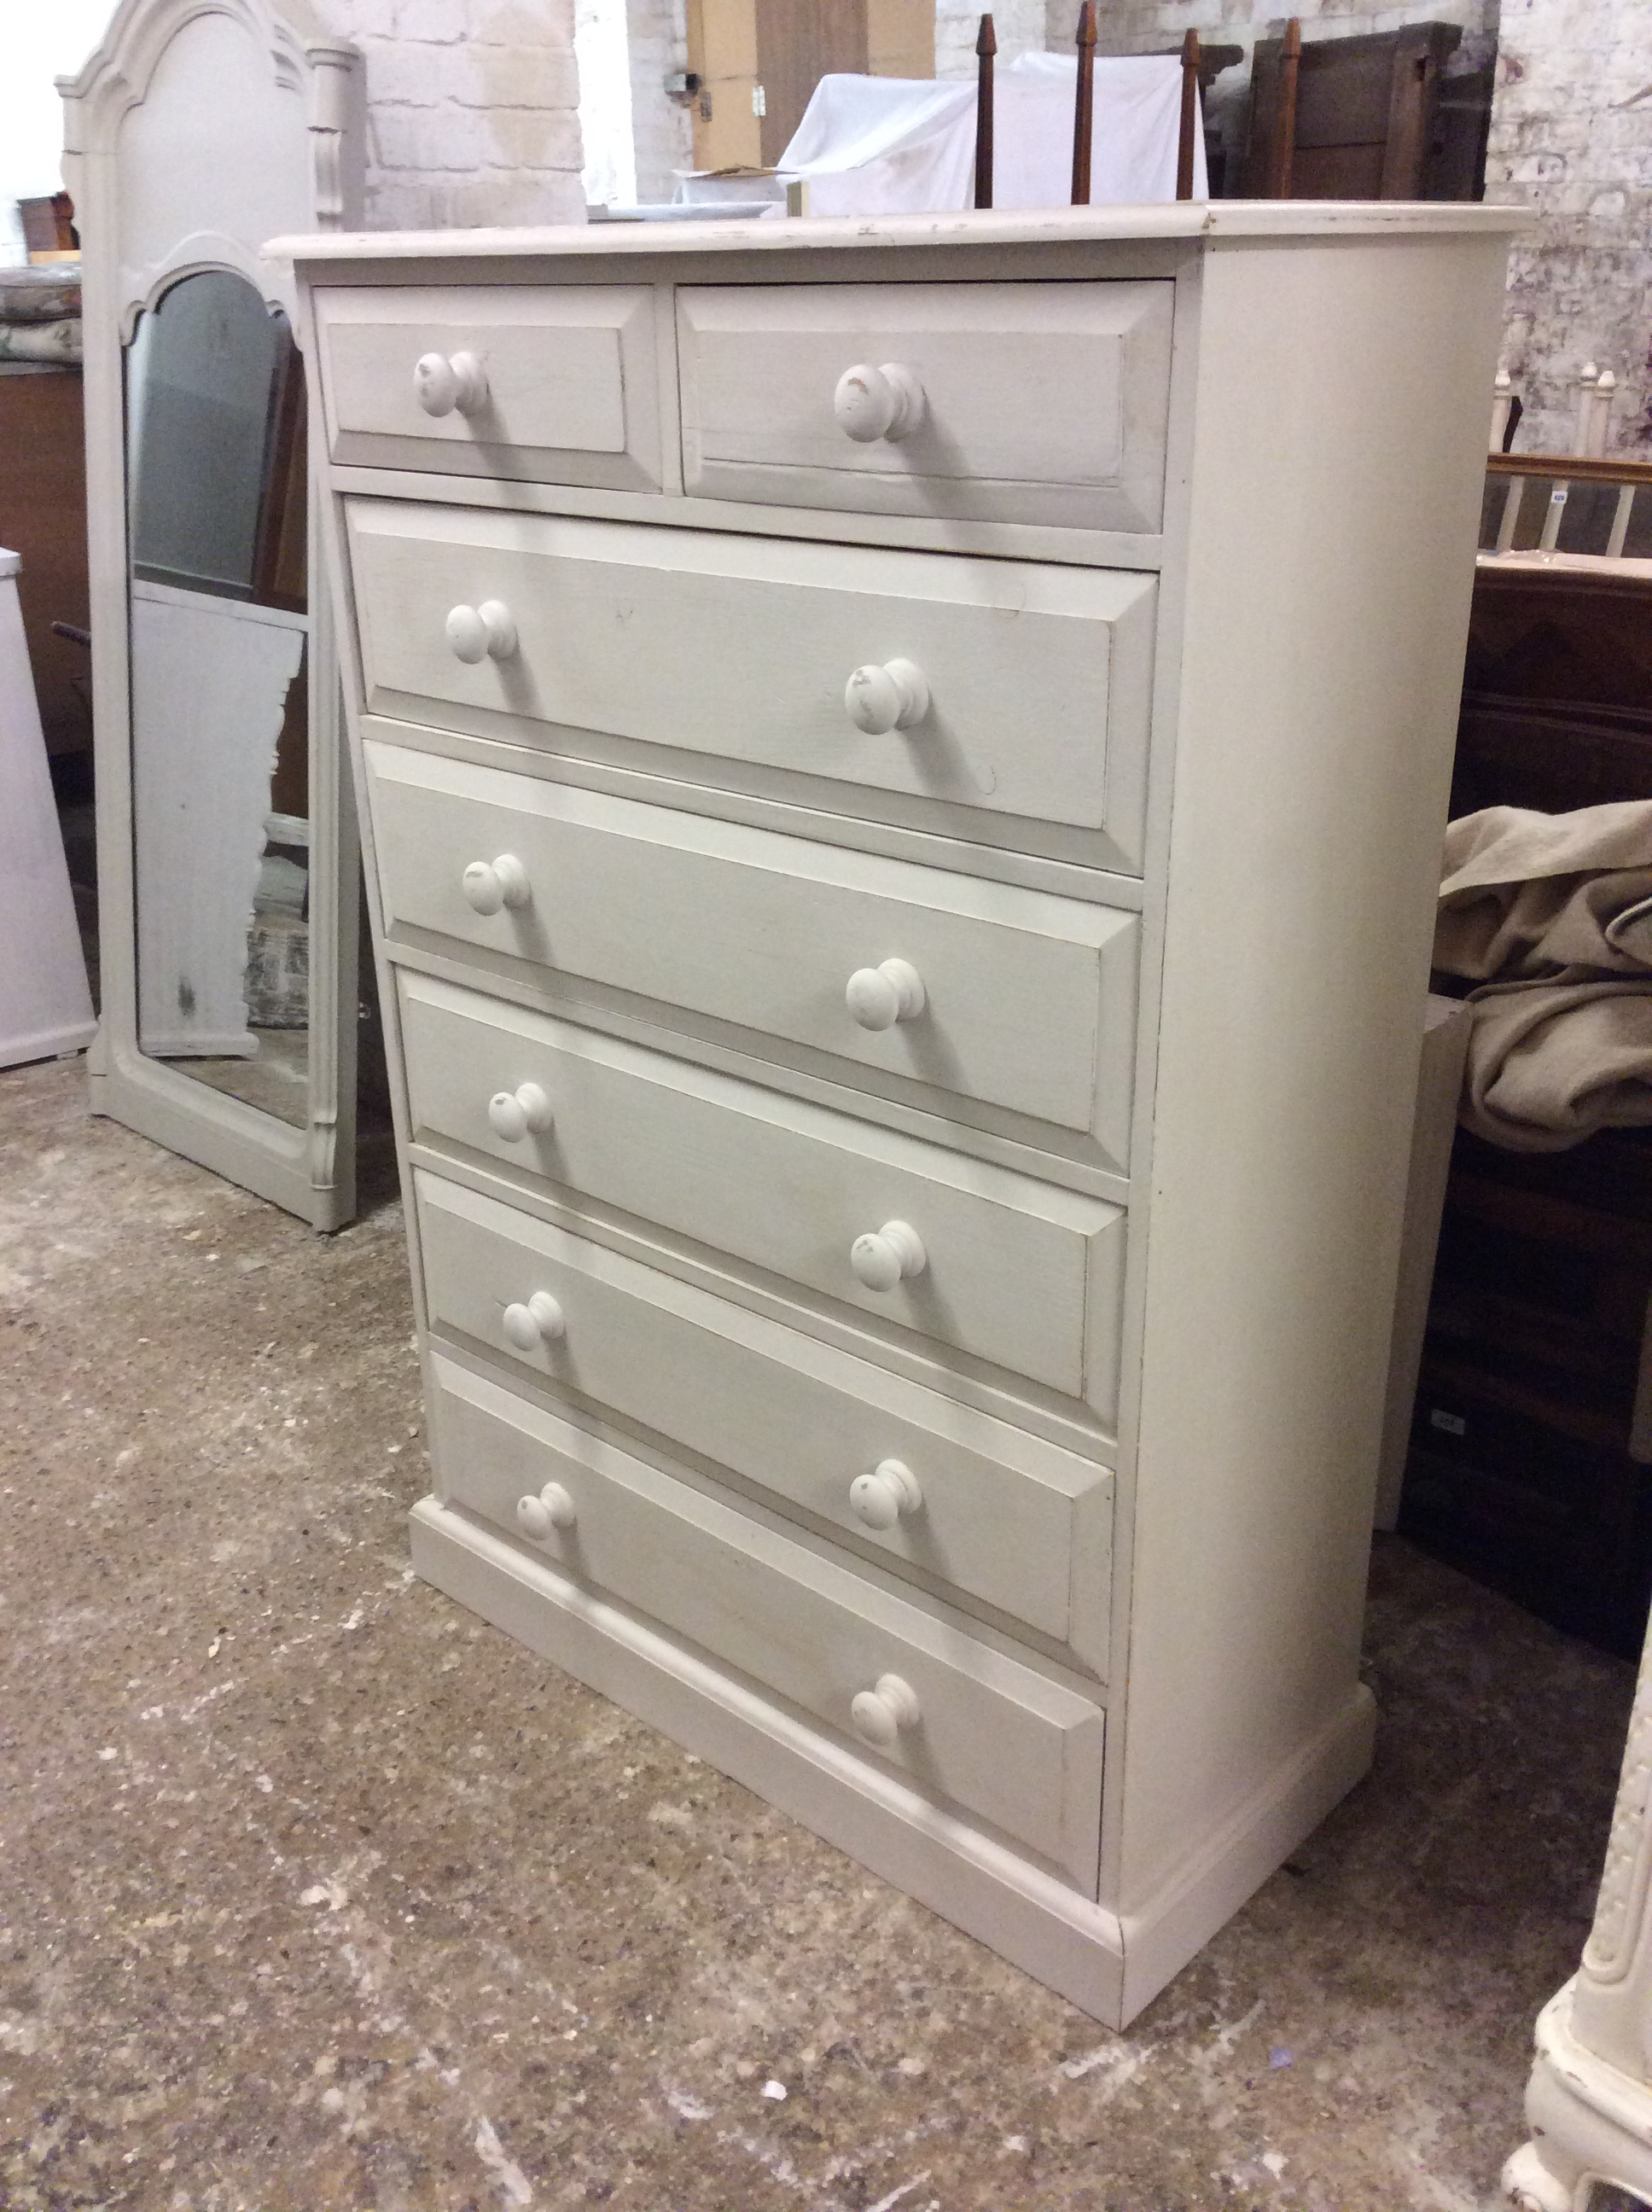 C Tall7 Drawer Chest Of Drawers , One For Each Day Of The Week.  H.132,w.91,d.41. £165